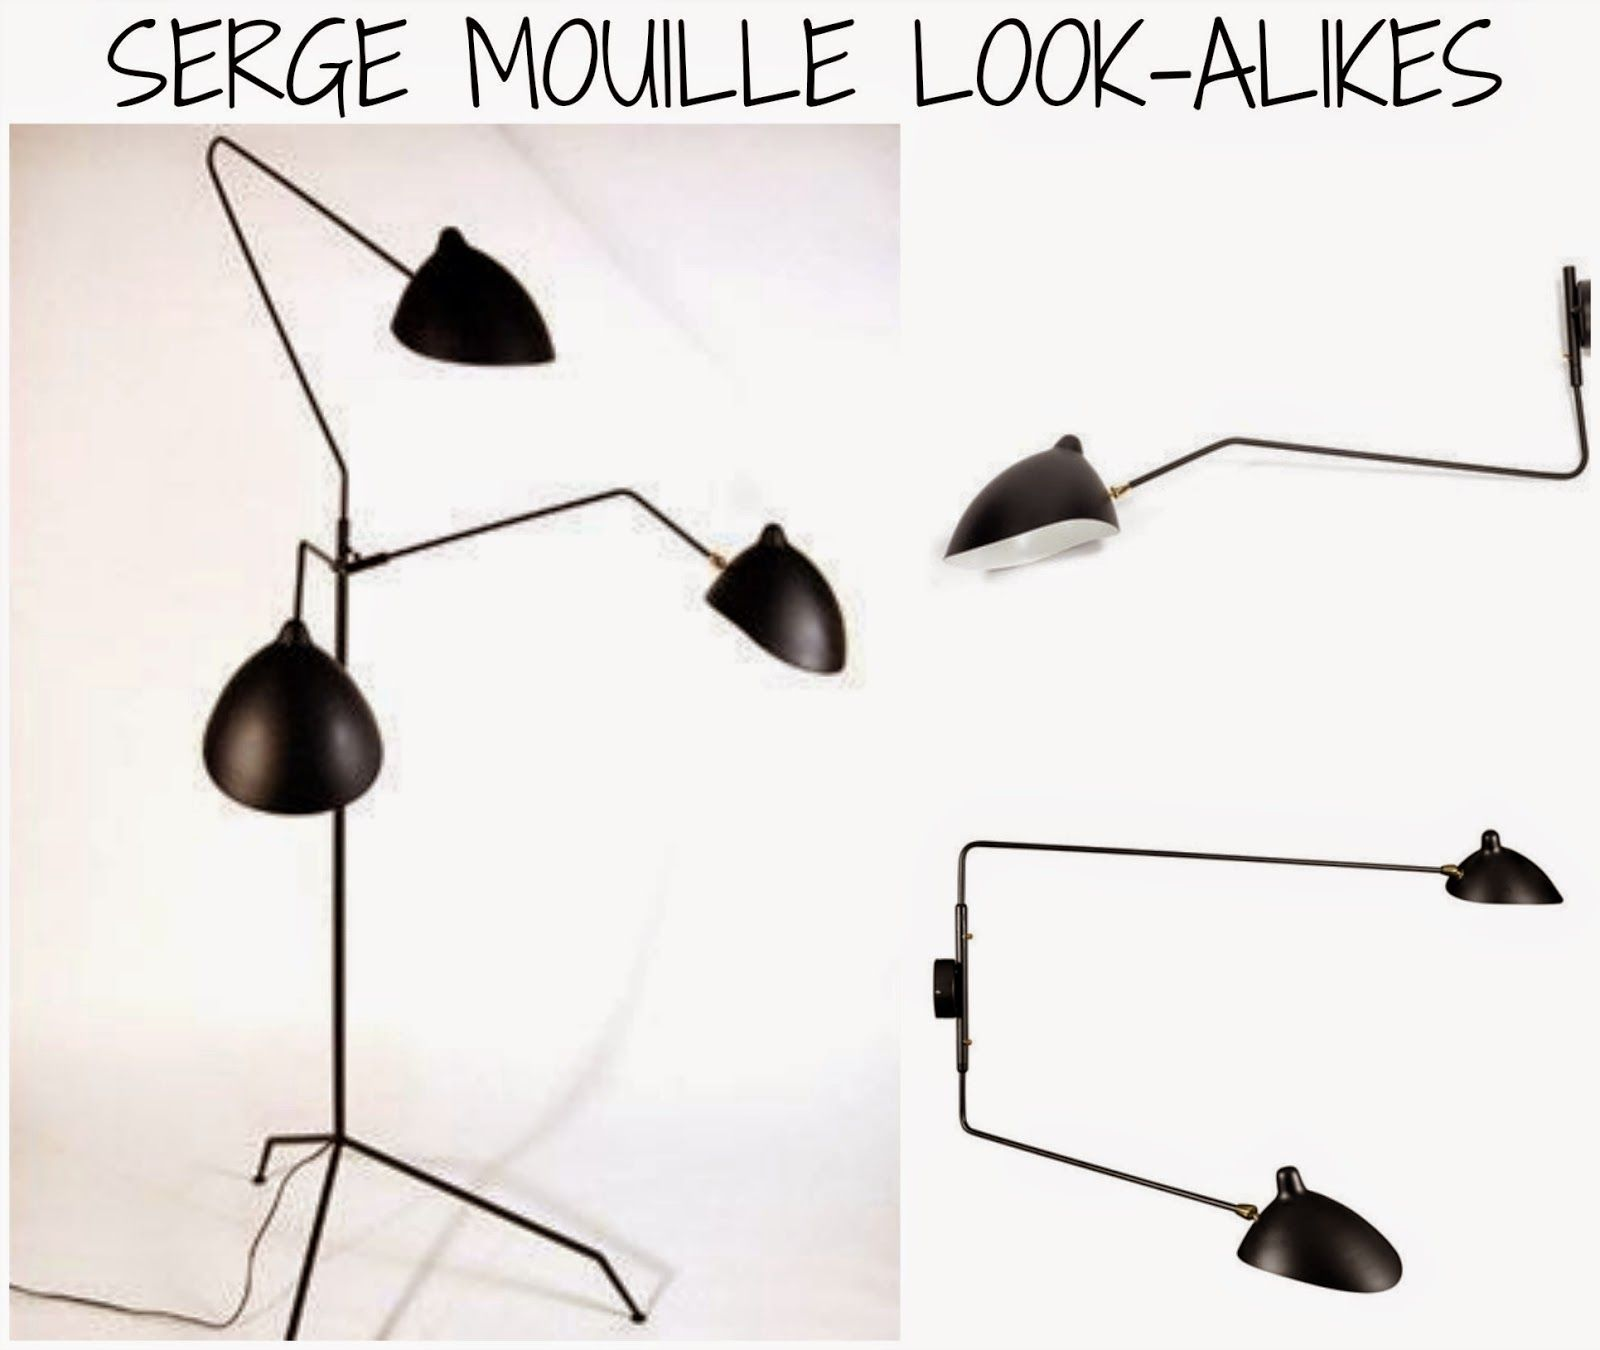 Rosa Beltran Design Blog Round-up of all the best Serge Mouilles look-alike lookalike look alike replica copy light fixtures fixture lighting sconces ...  sc 1 st  Pinterest & Rosa Beltran Design Blog Round-up of all the best Serge Mouilles ... azcodes.com